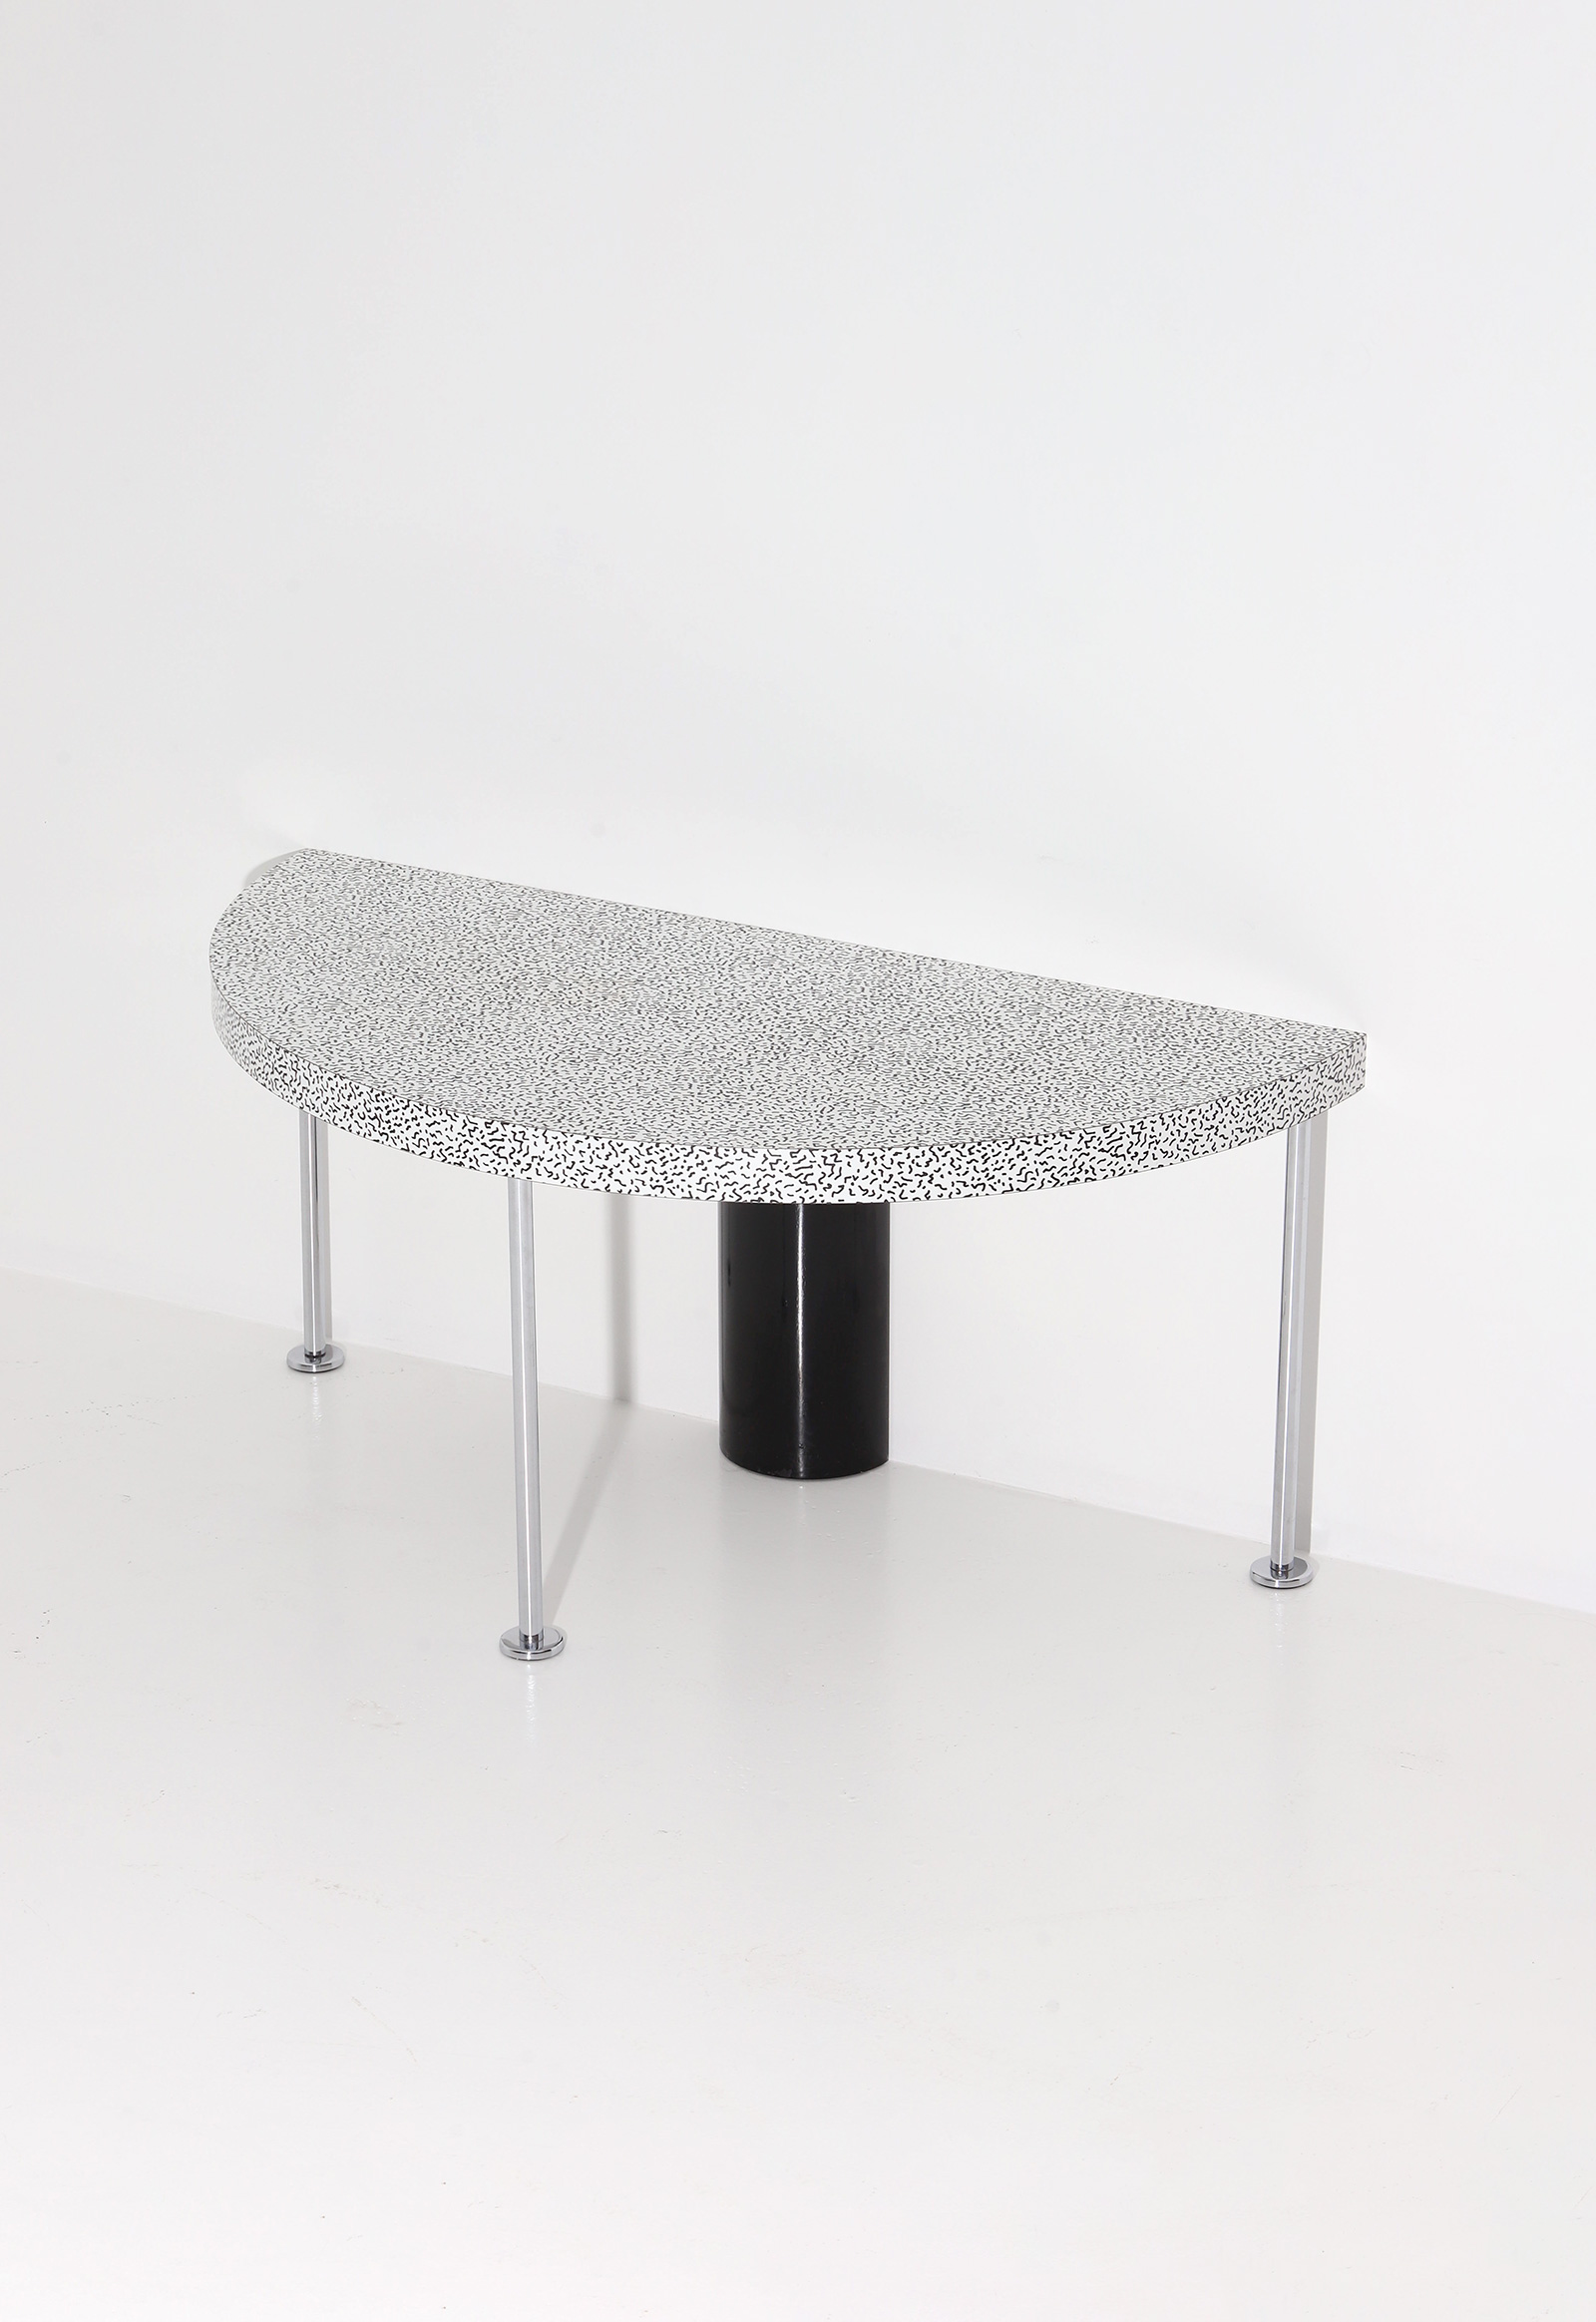 Ettore Sottsass Side Table for Zanottaimage 7